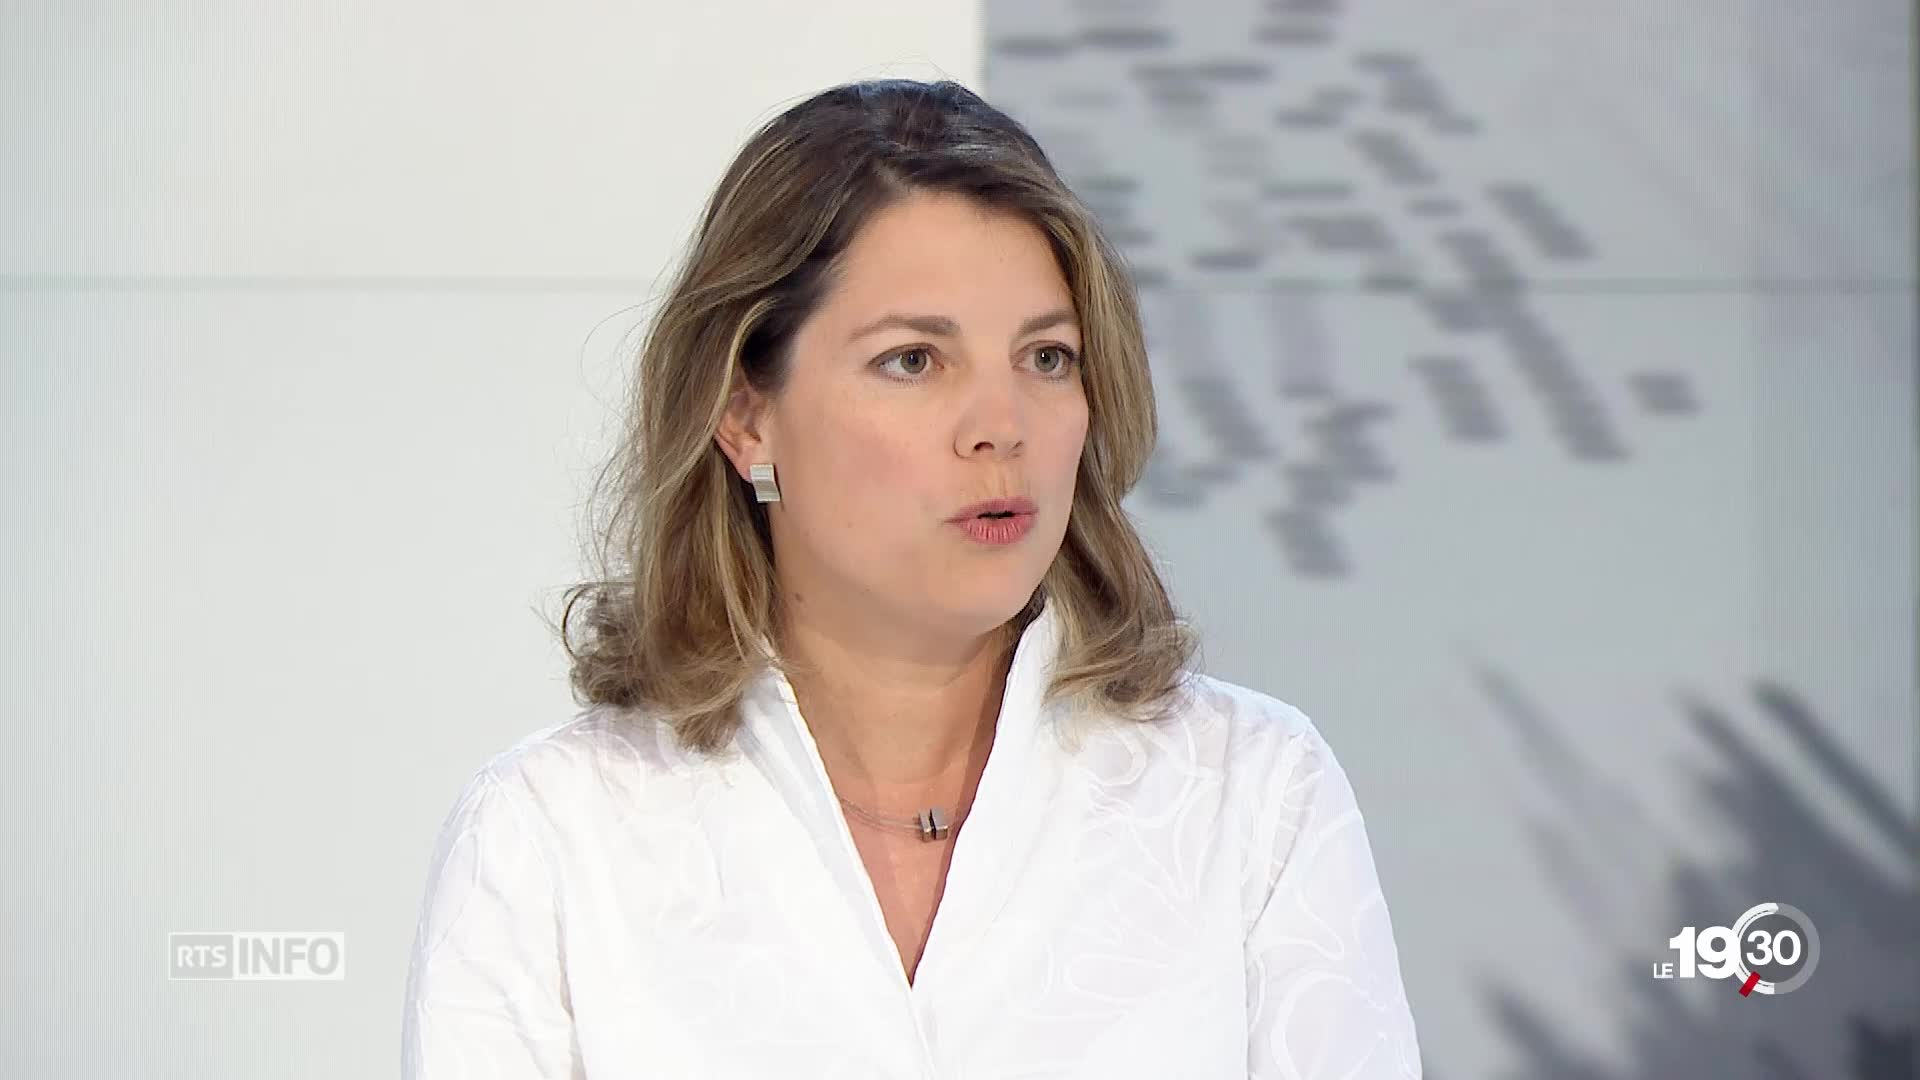 Exportation d'isopropanol: l'interview de Manon Schick